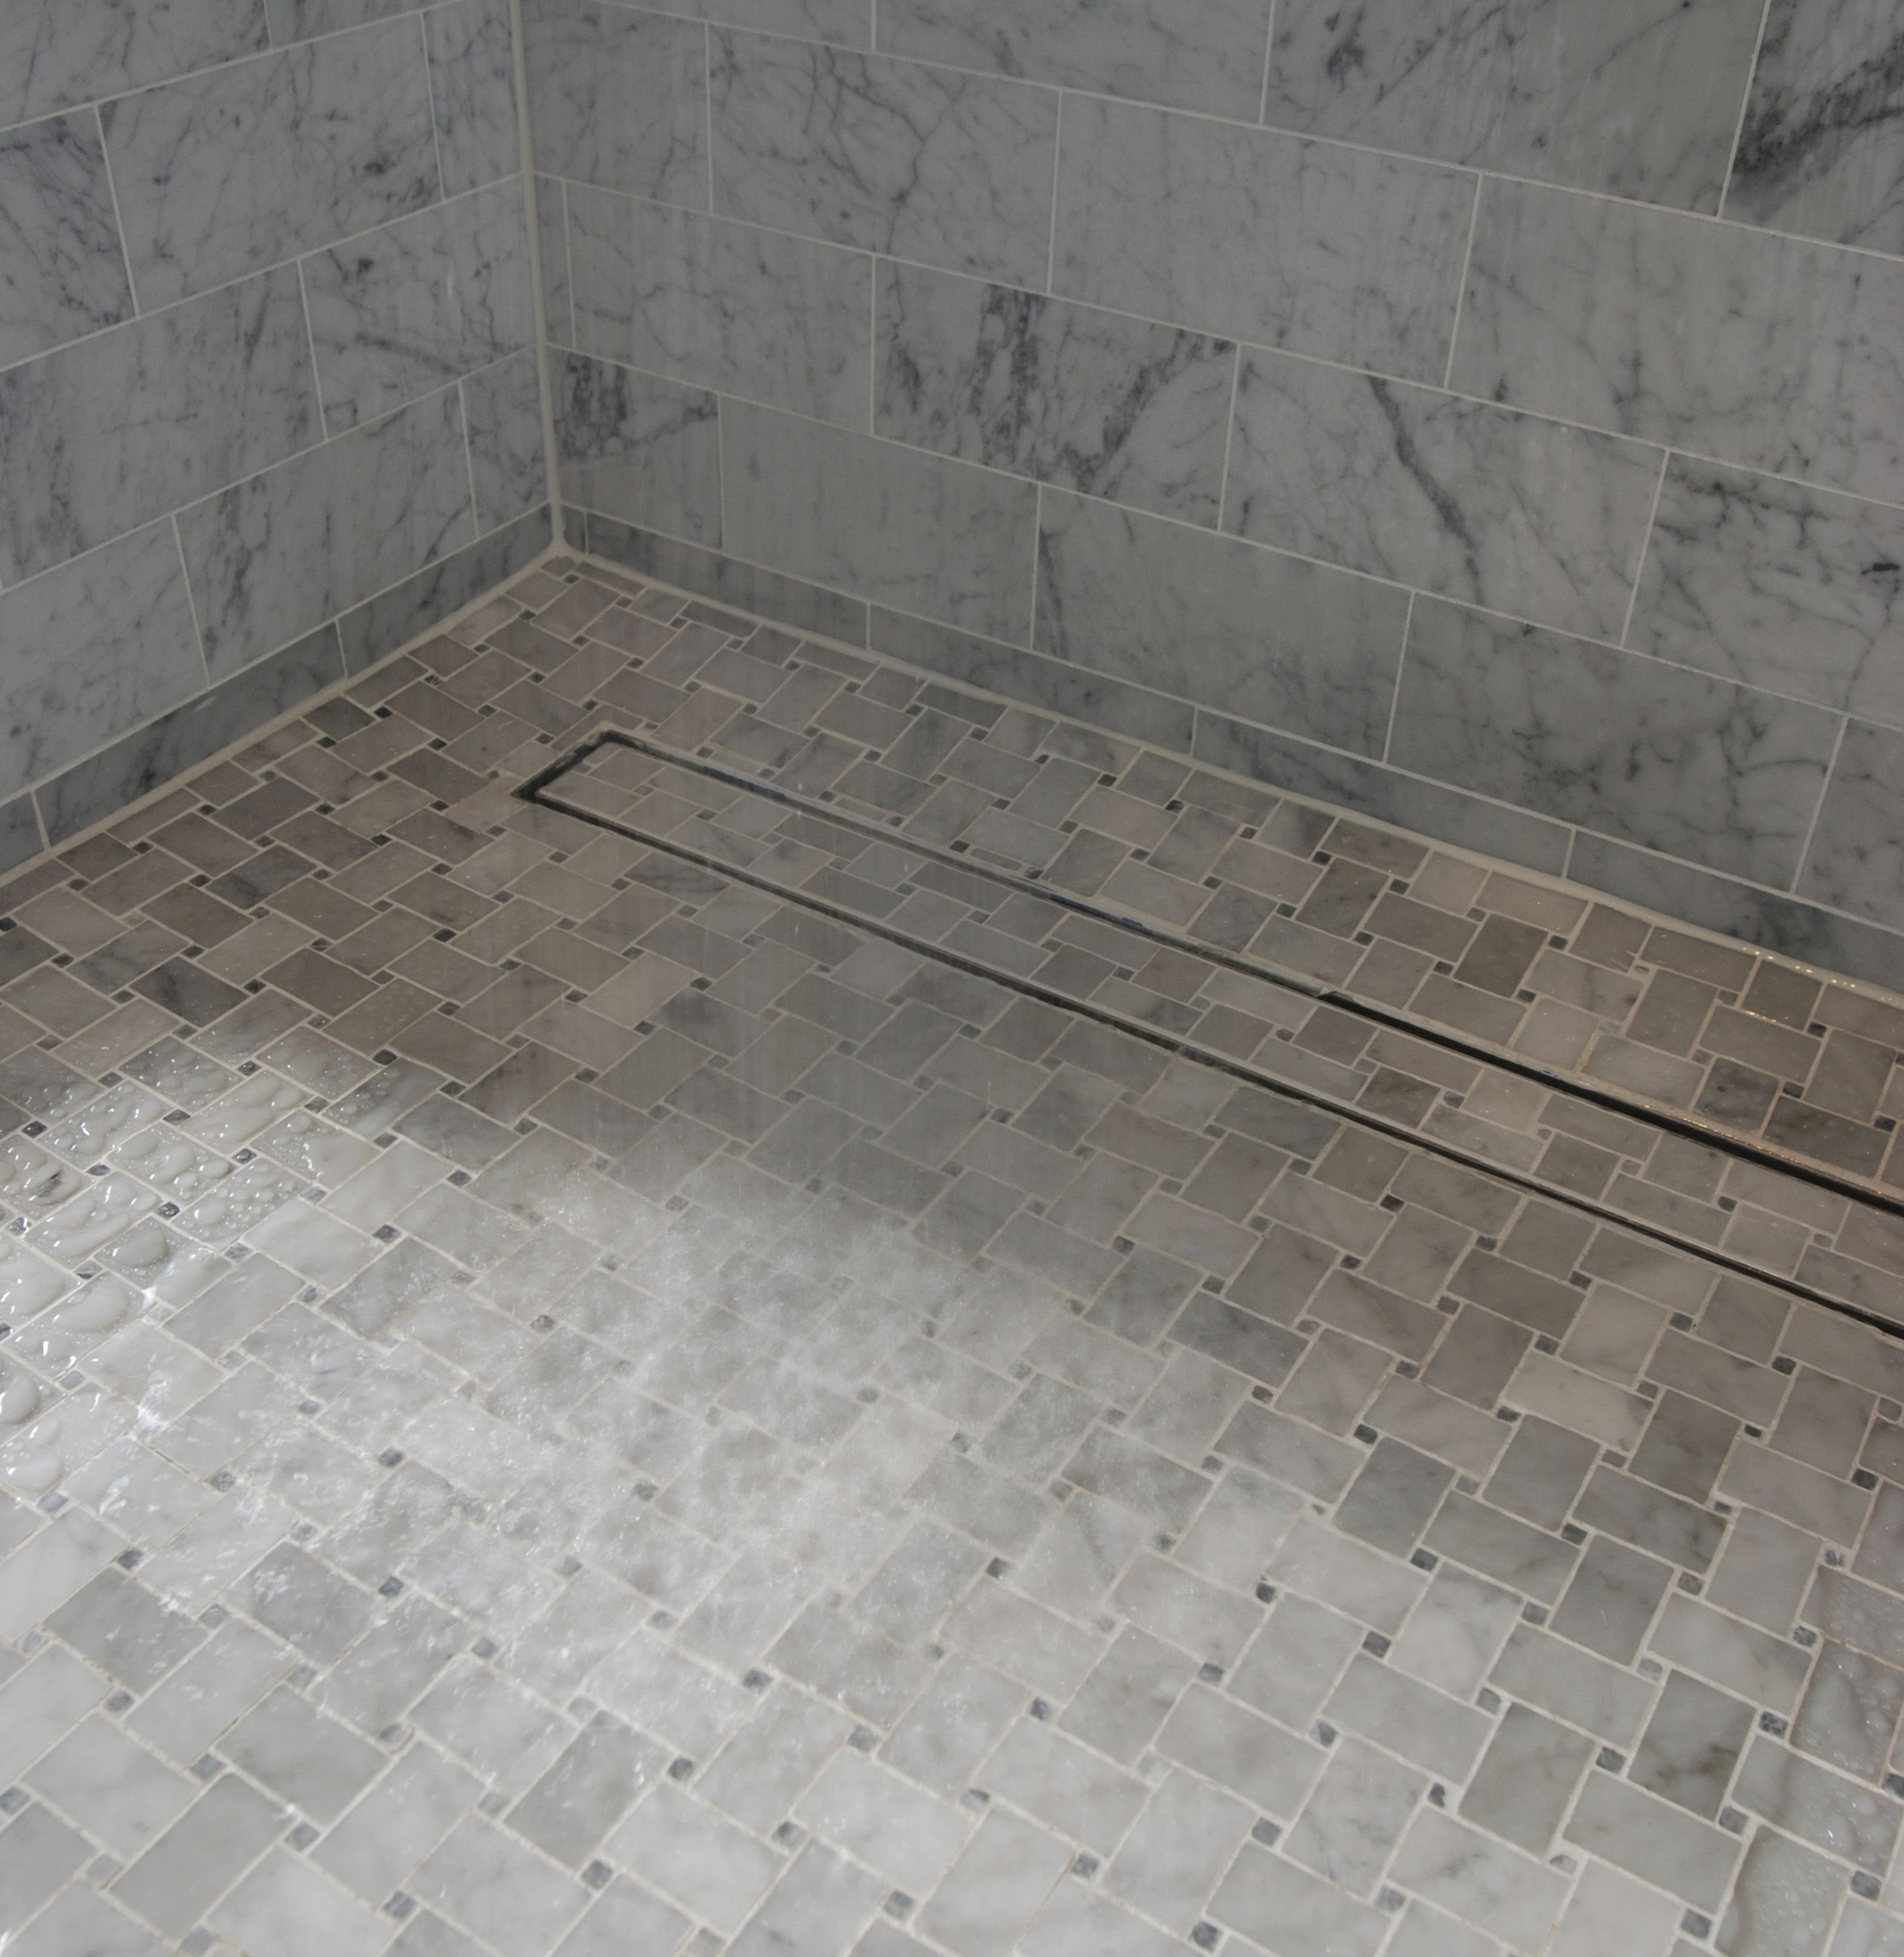 Shower Floor Tiles Which Why And How: 1000mm 316 Stainless Steel Shower Grate With Tile Insert